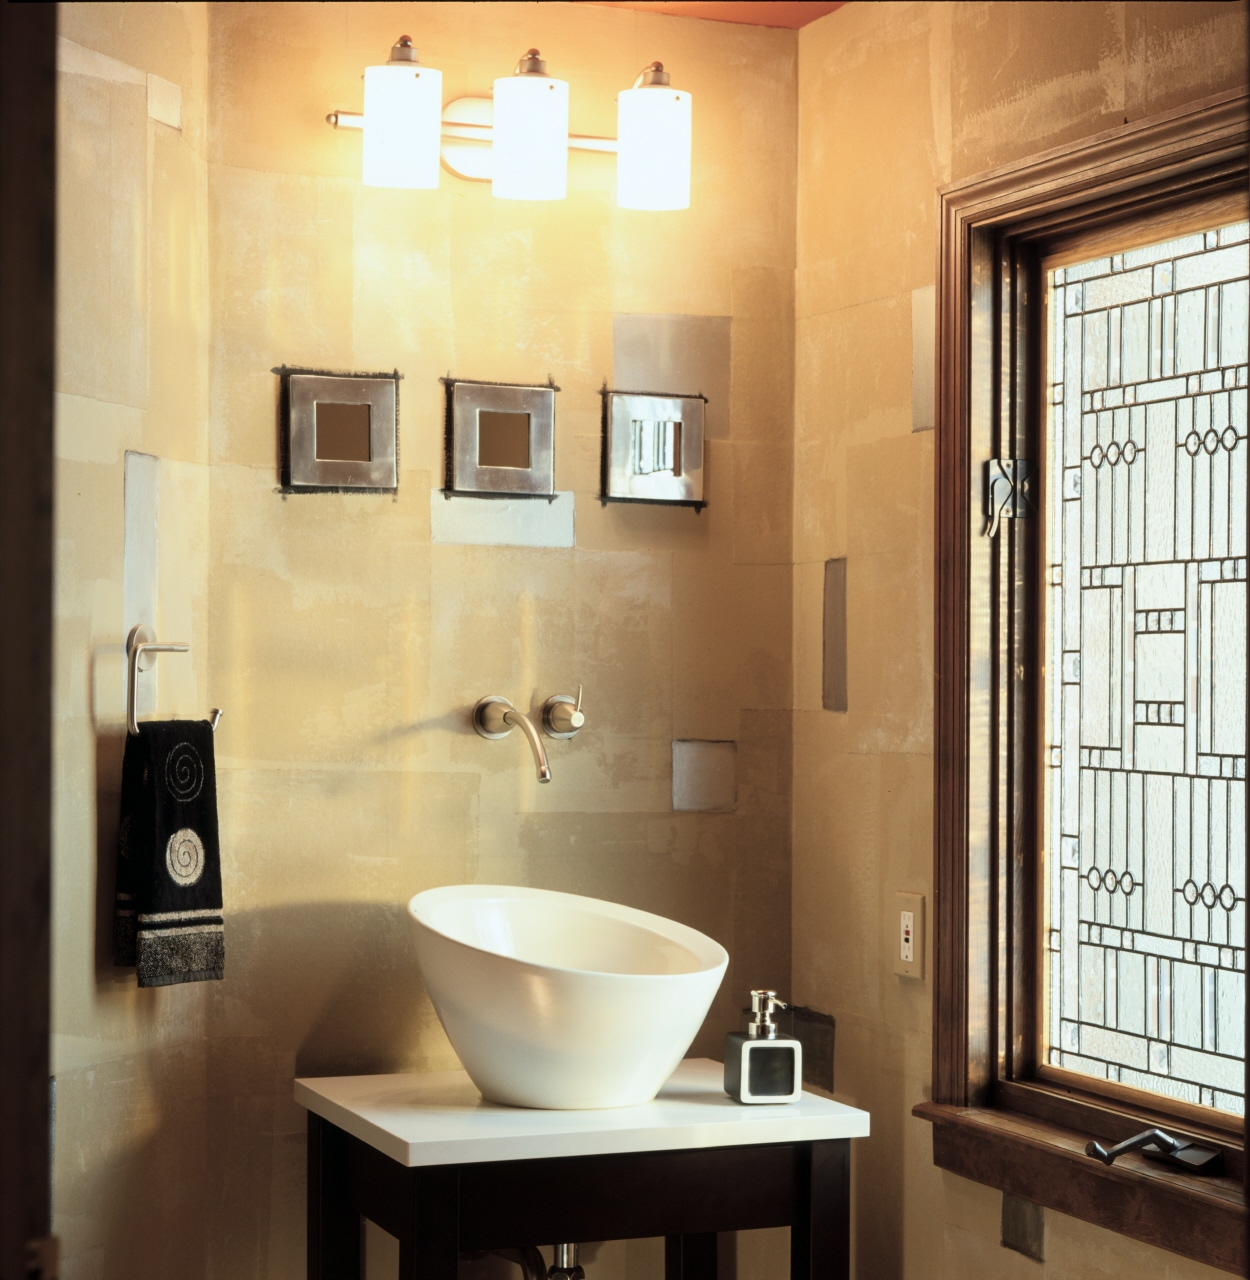 9 great design ideas for half baths and powder rooms - Half bath remodel ideas ...